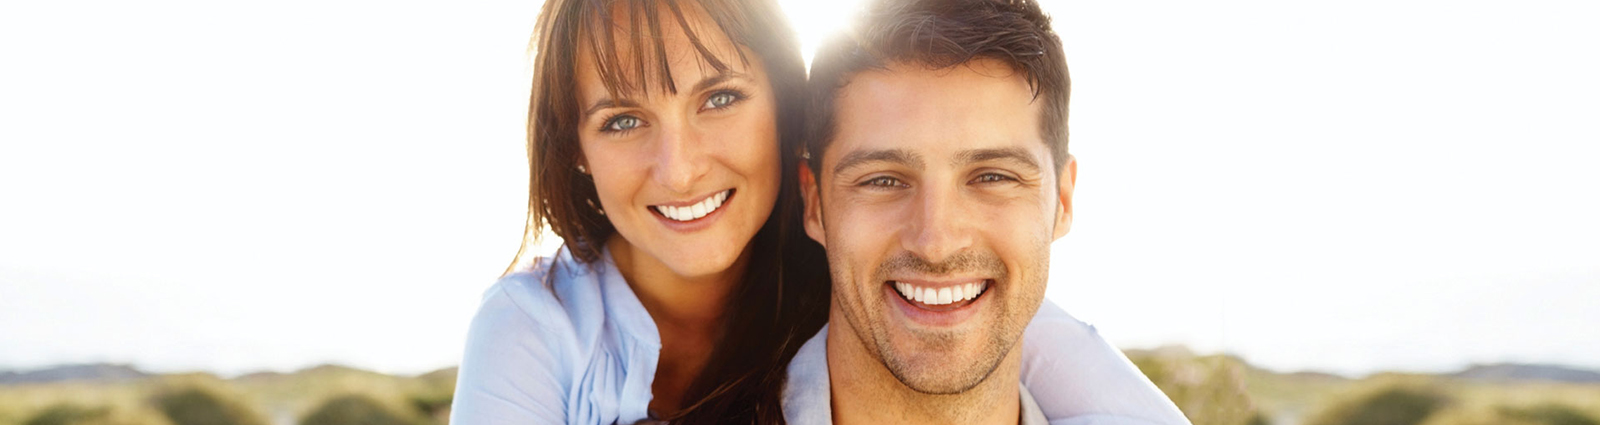 Dentist in San Antonio: Canyon Golf Family Dentistry